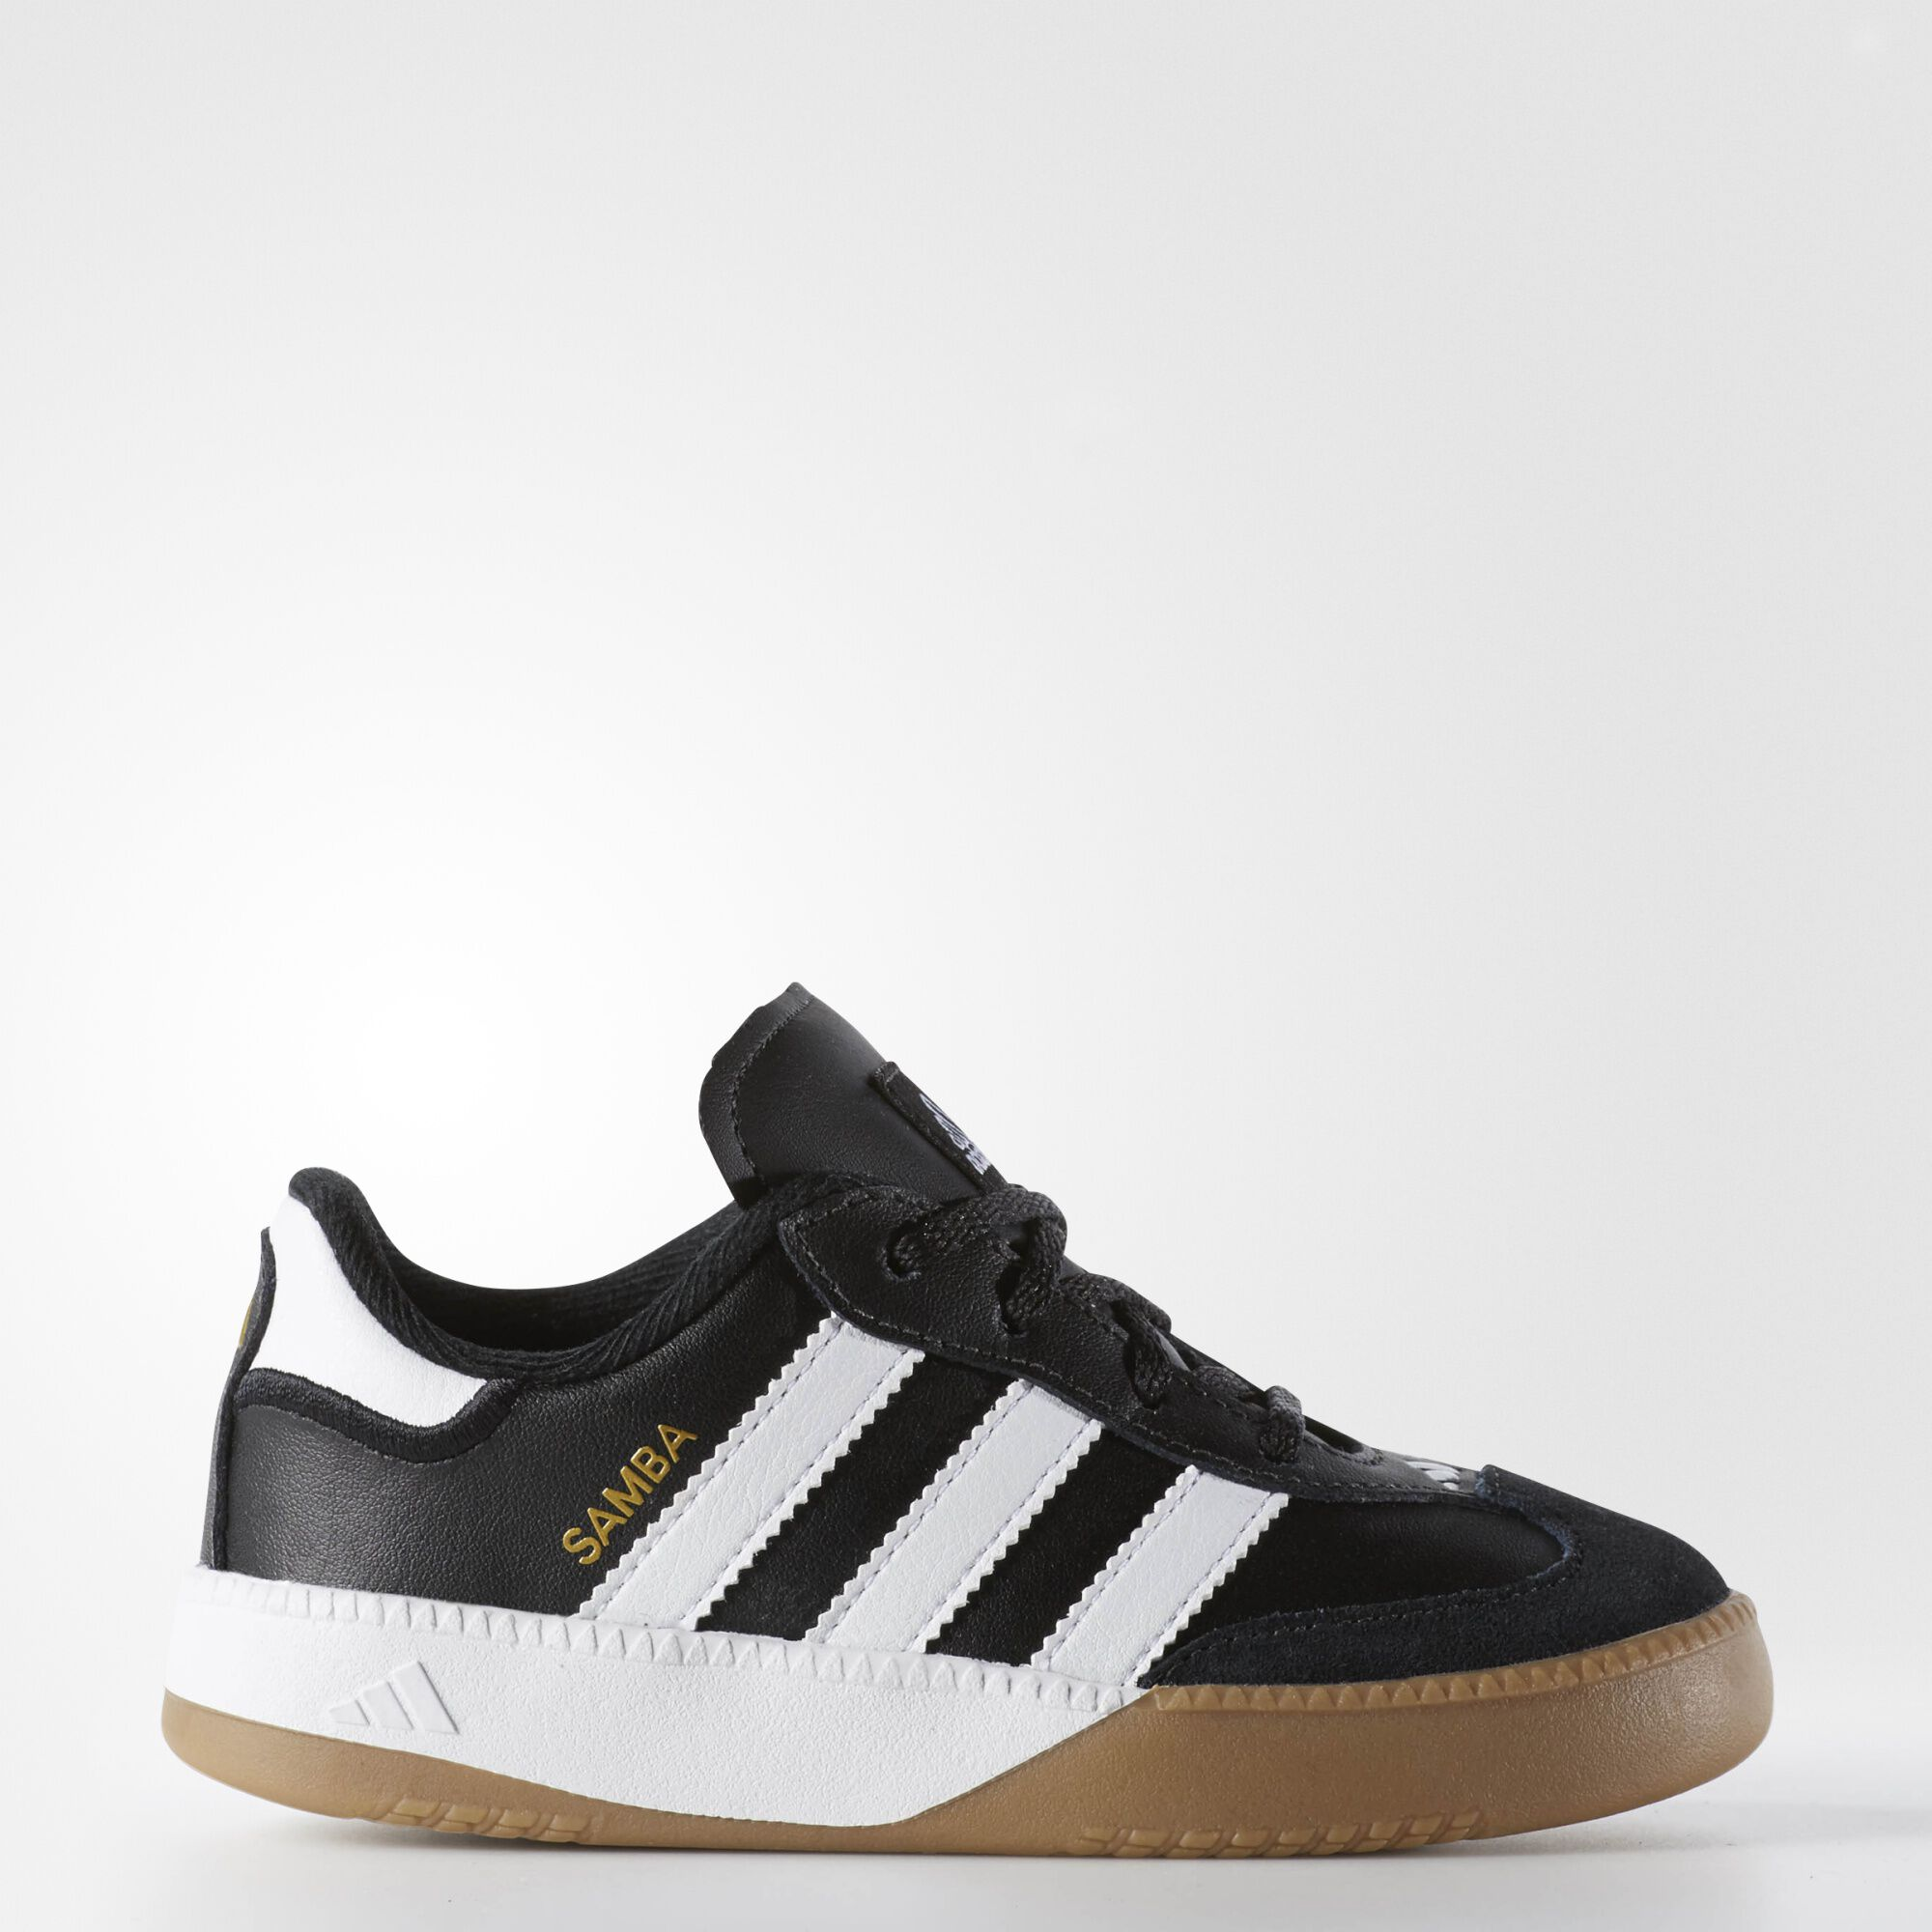 adidas samba indoor soccer shoe kids